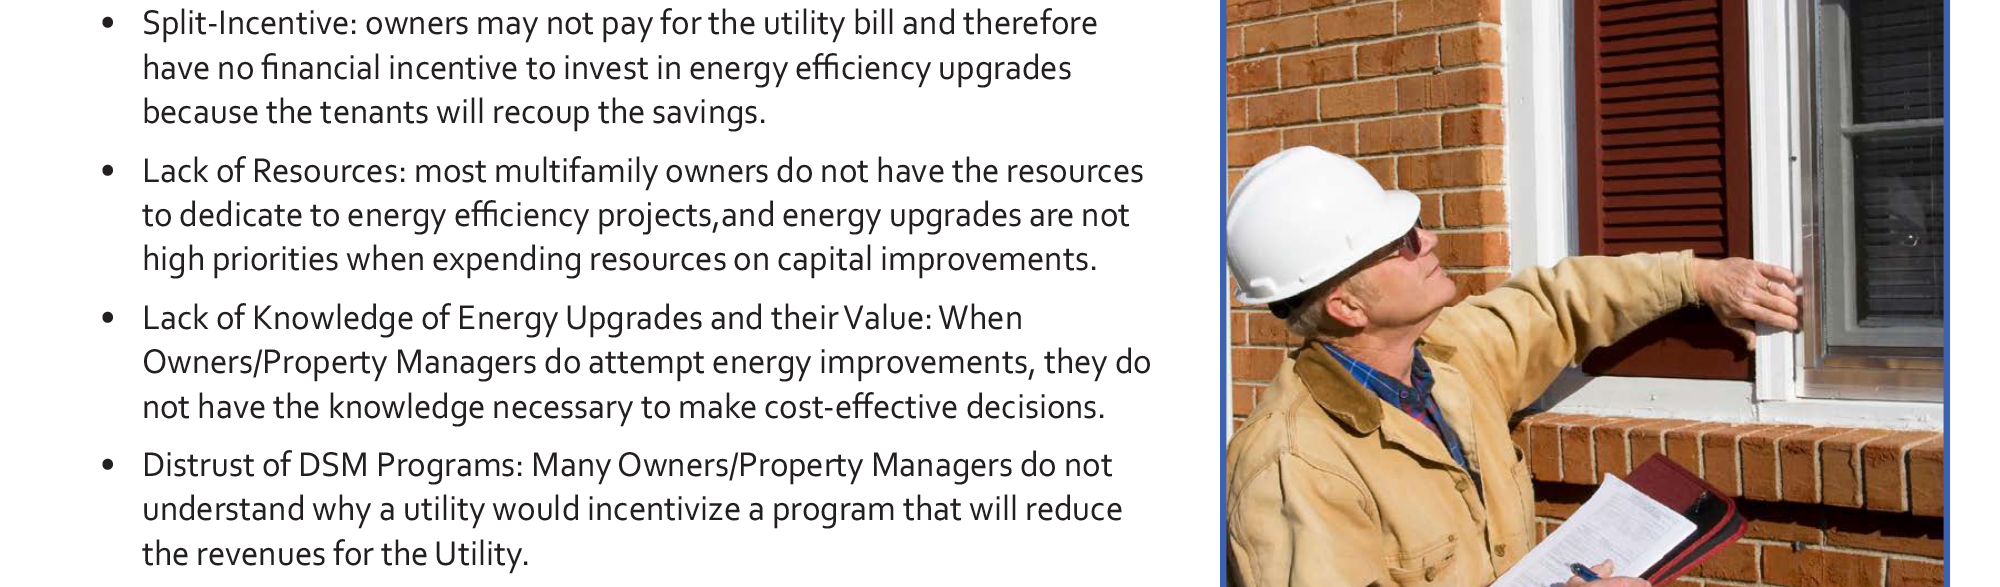 Market Barriers • Split-Incentive: owners may not pay for the utility bill and therefore have no financial incentive to invest in energy efficiency upgrades because the tenants will recoup the savings. • Lack of Resources: most multifamily owners do not have the resources to dedicate to energy efficiency projects, and energy upgrades are not high priorities when expending resources on capital improvements. • Lack of Knowledge of Energy Upgrades and their Value: When Owners/Property Managers do attempt energy improvements, they do not have the knowledge necessary to make cost-effective decisions. • Distrust of DSM Programs: Many Owners/Property Managers do not understand why a utility would incentivize a program that will reduce the revenues for the Utility. • Myth of Green: Many owners and managers believe the prevalent myth that 'going green' is always expensive.